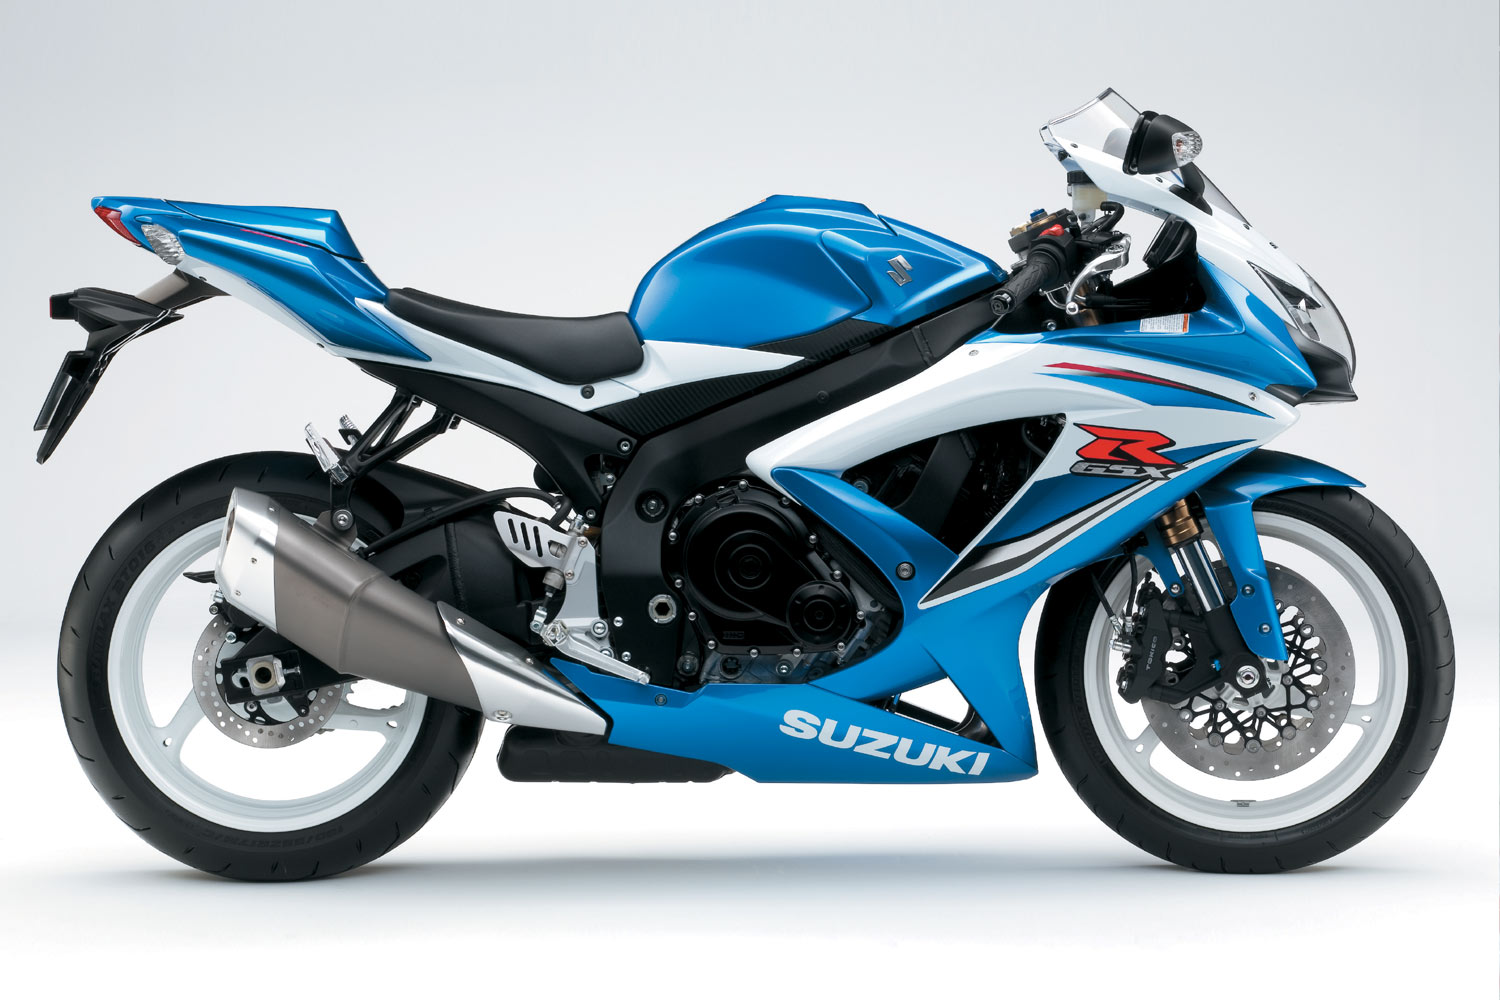 2009 suzuki gsx r 600 moto zombdrive com. Black Bedroom Furniture Sets. Home Design Ideas